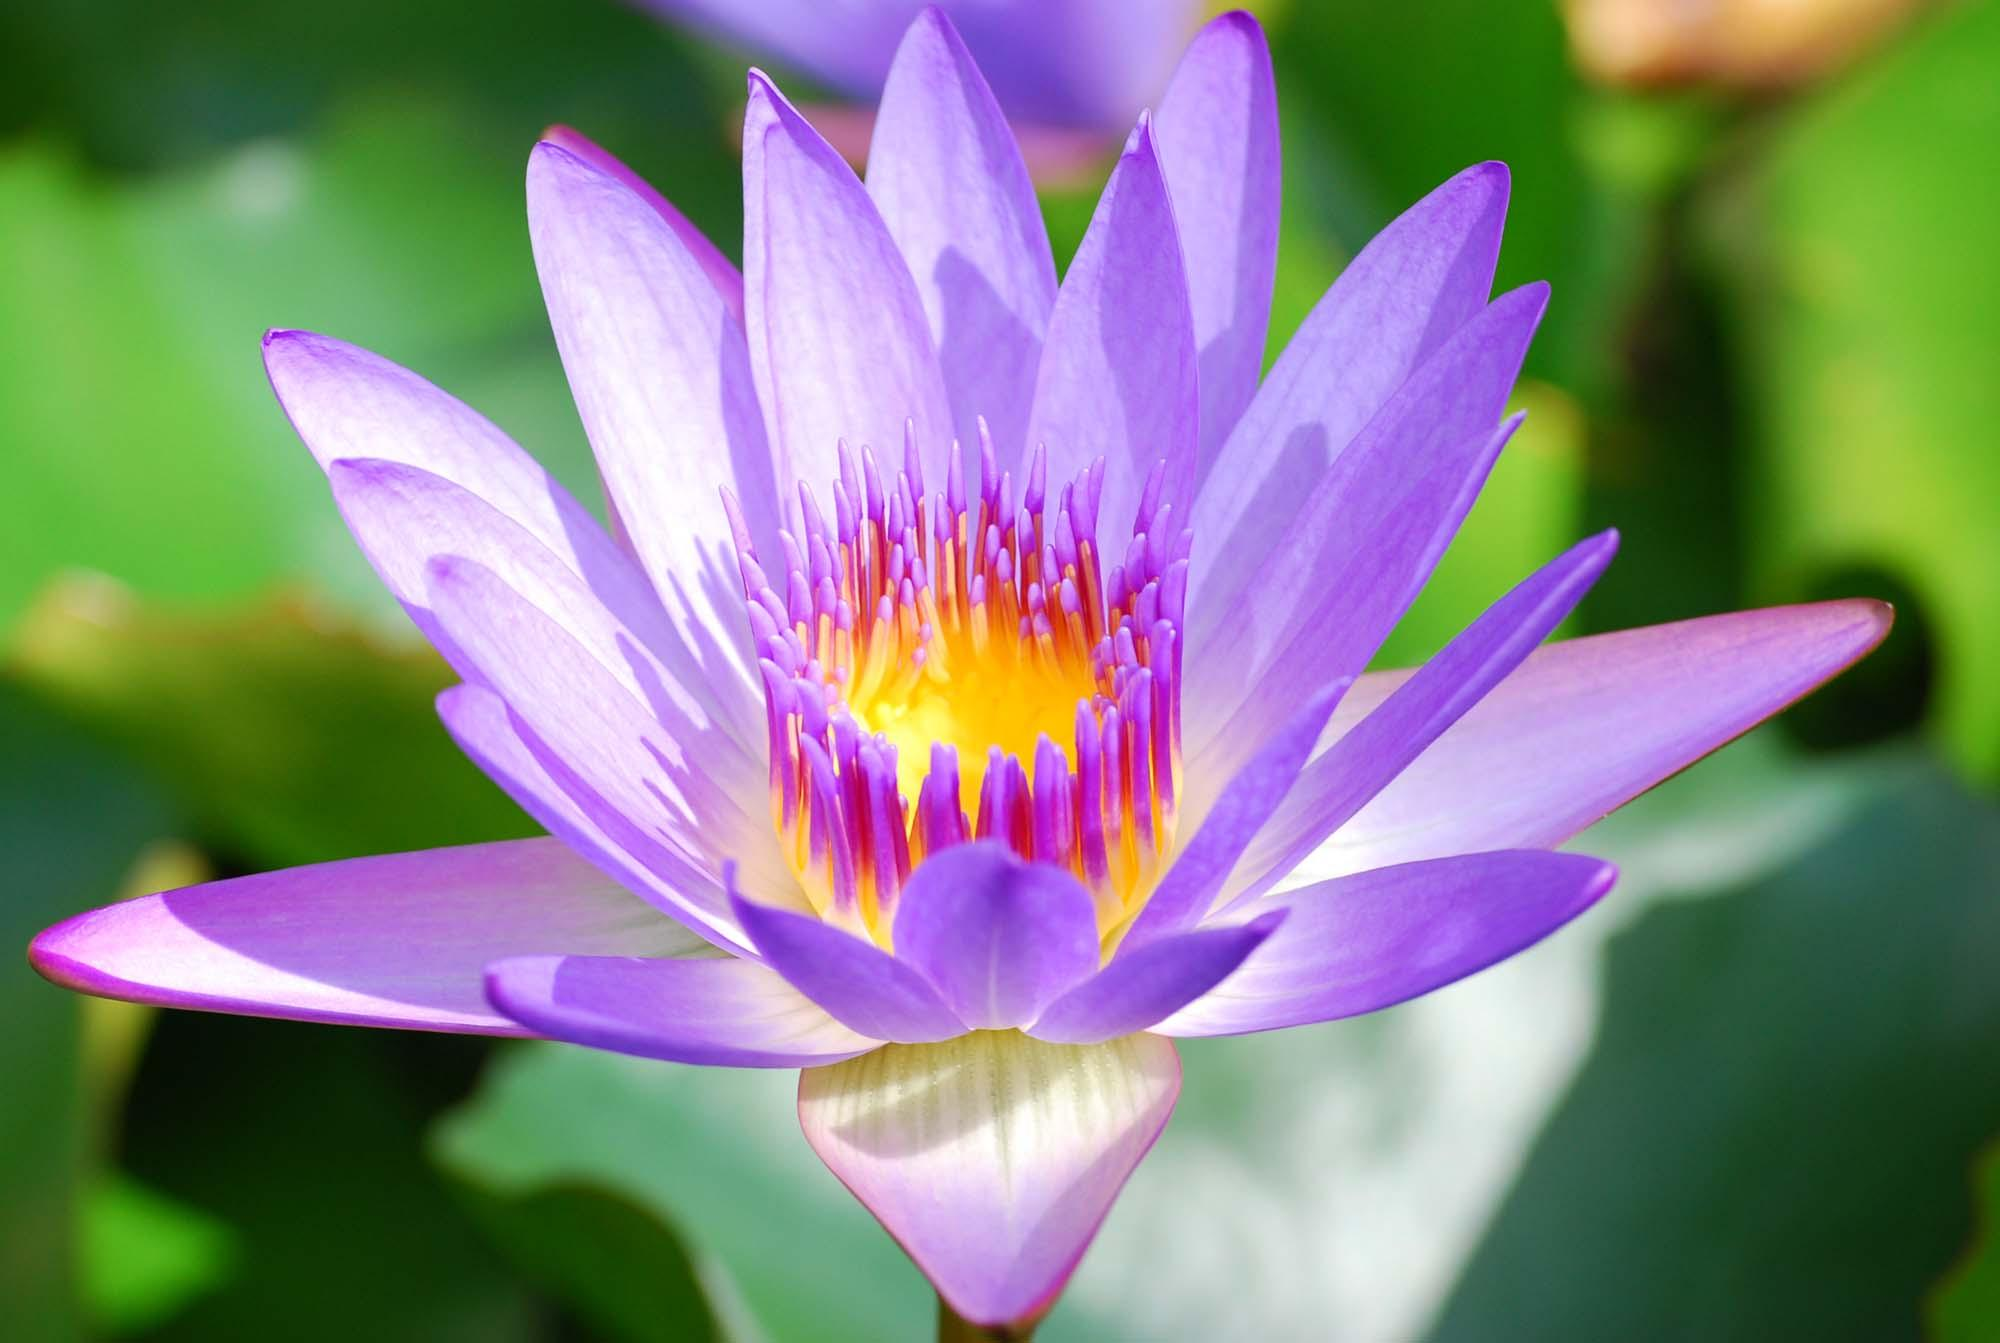 Meaning of purple lotus flower images flower decoration ideas purple flowers meaning 10 free hd wallpaper hdflowerwallpaper purple flowers meaning widescreen wallpaper mightylinksfo izmirmasajfo